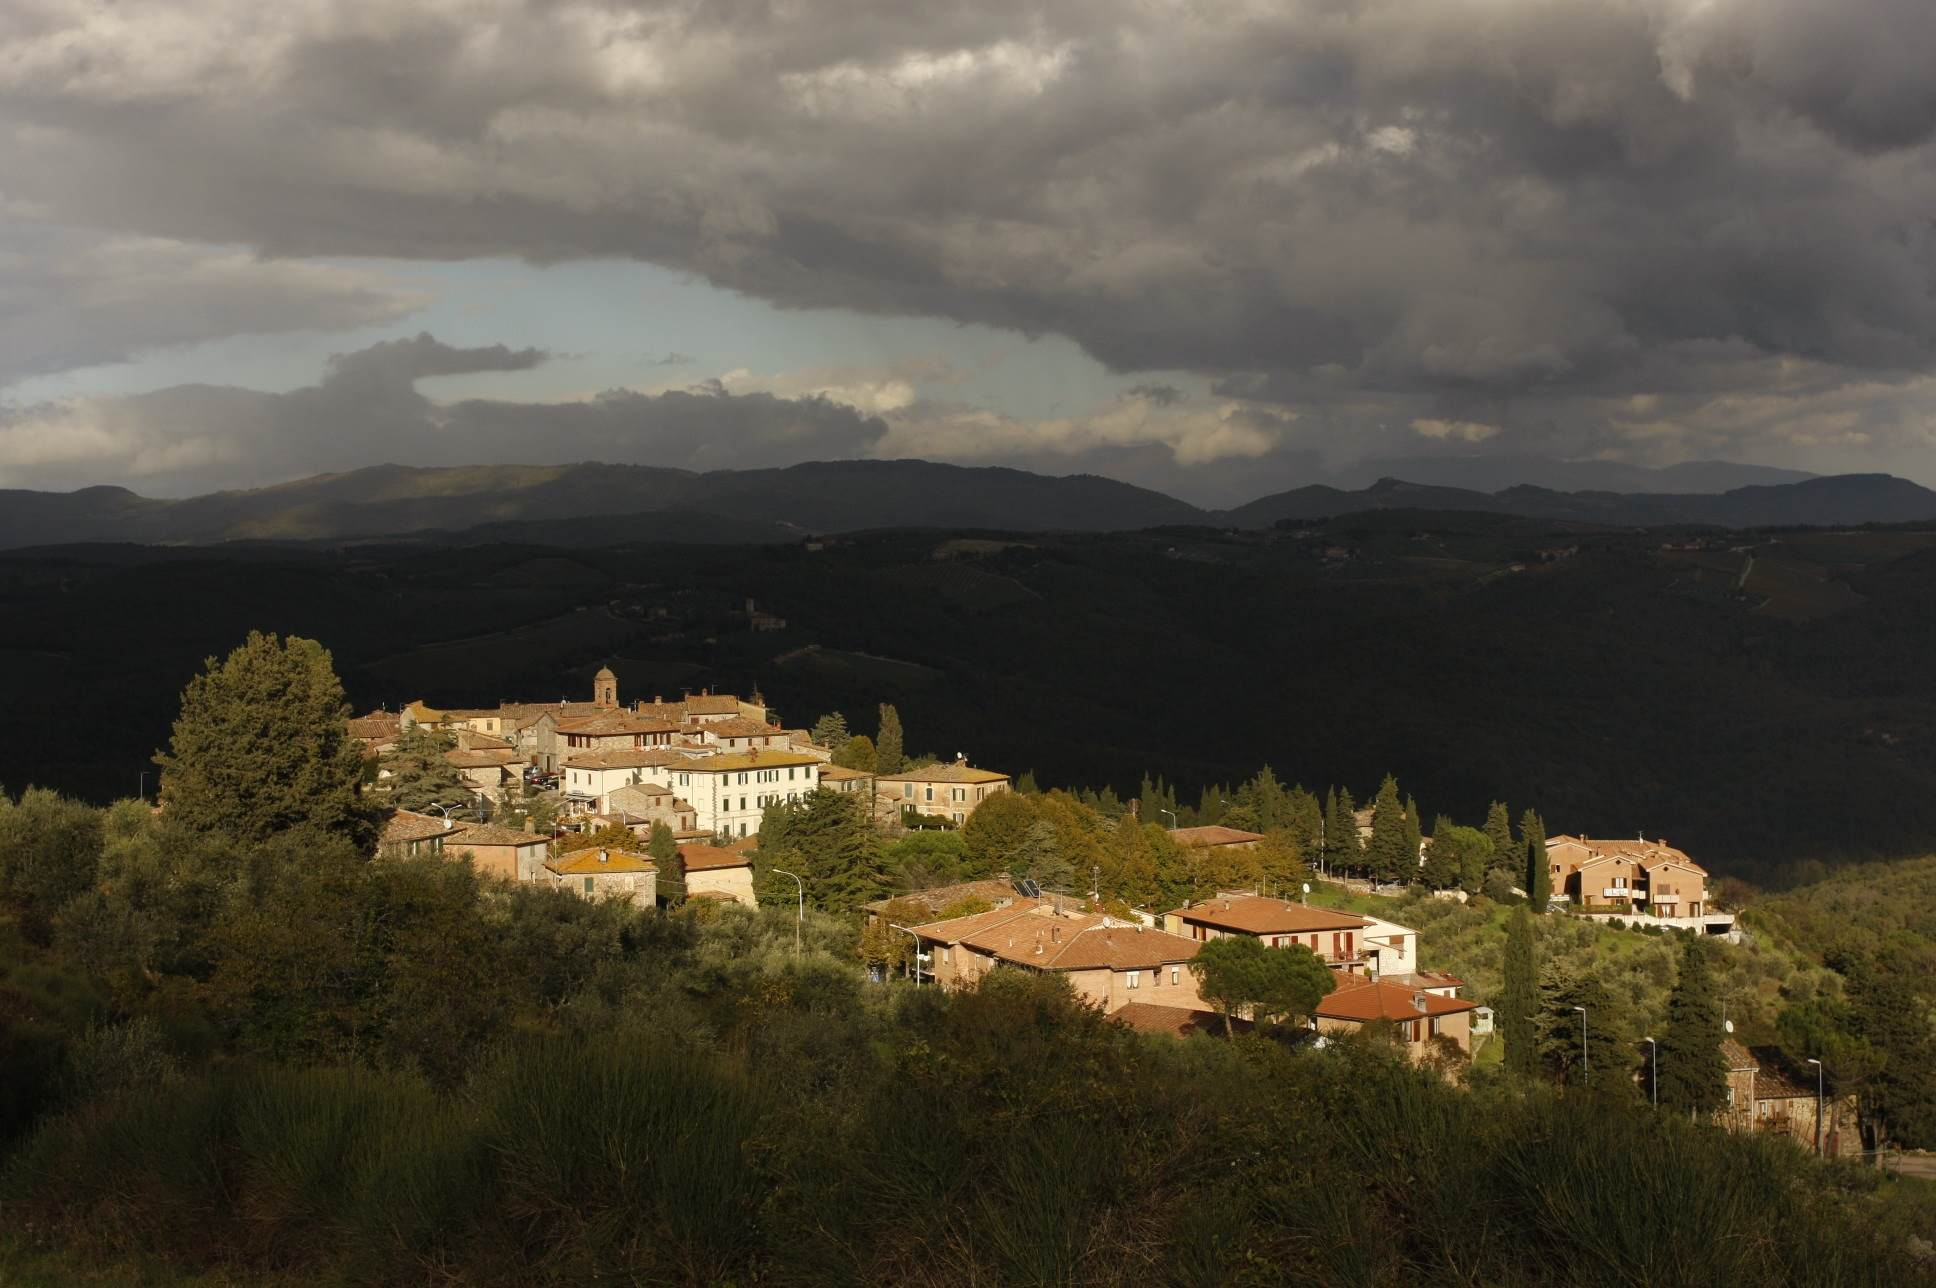 A scenic view of the charming Tuscan town of Vagliagli, Italy.